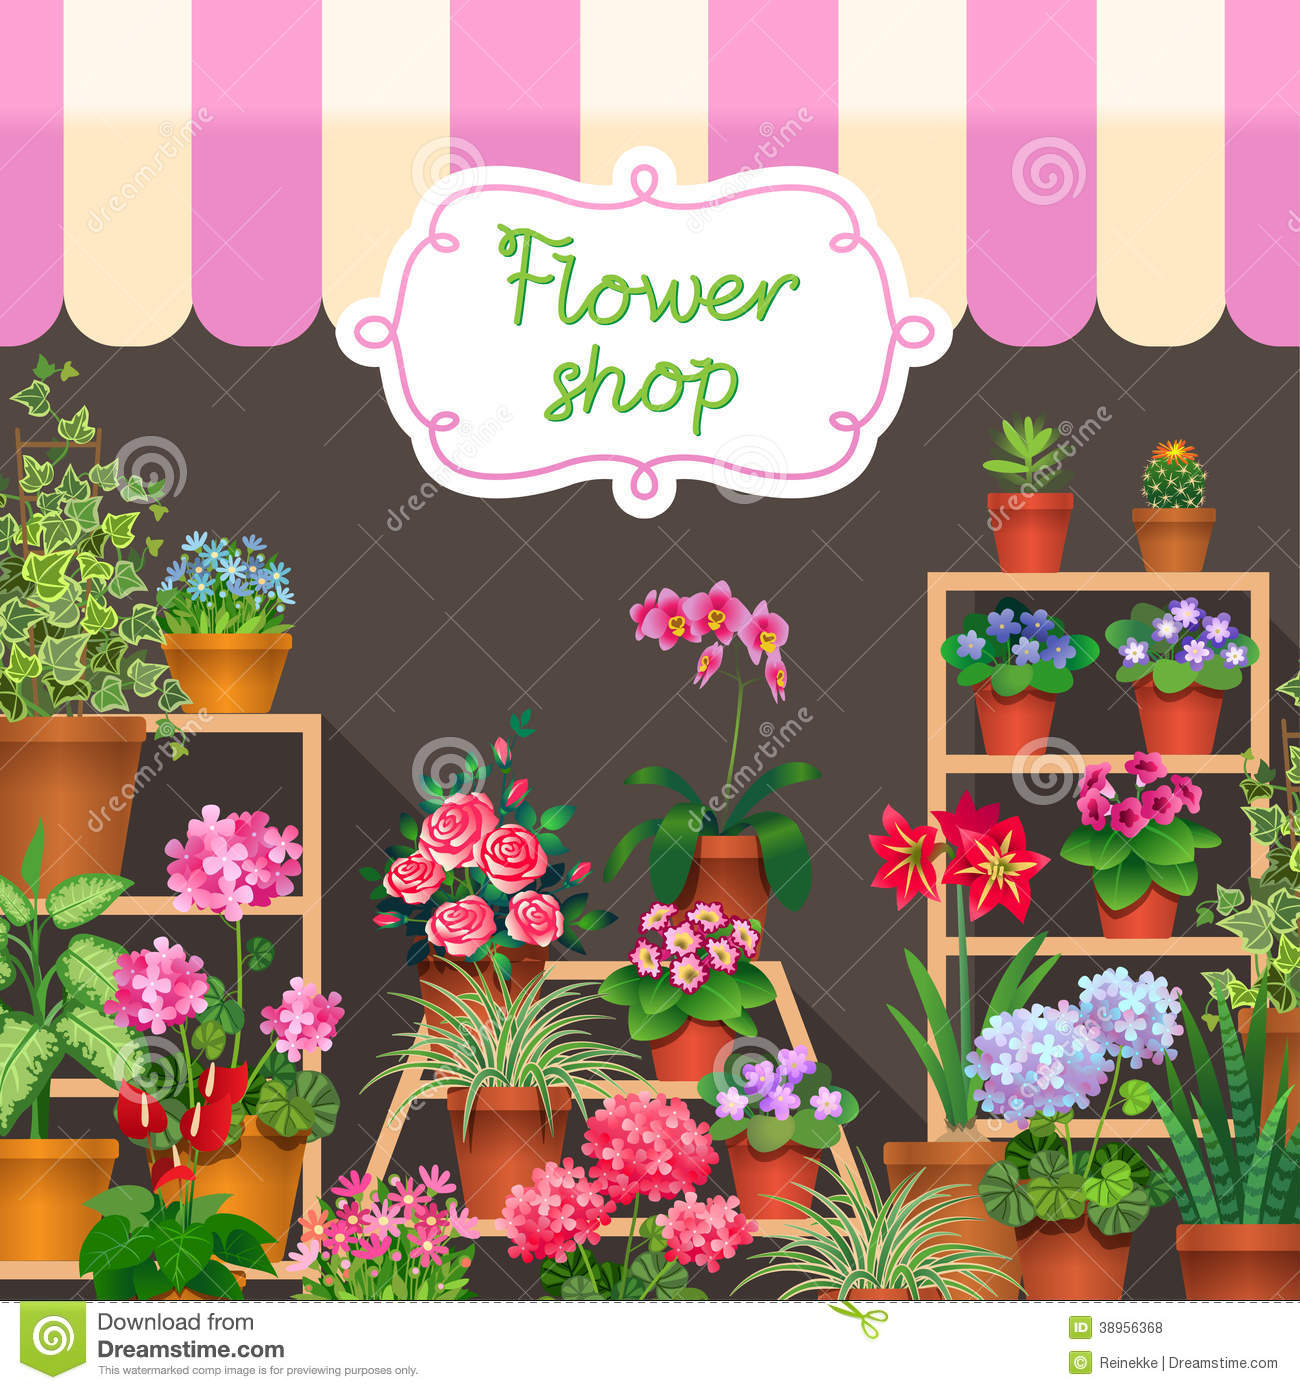 flower shop business plan